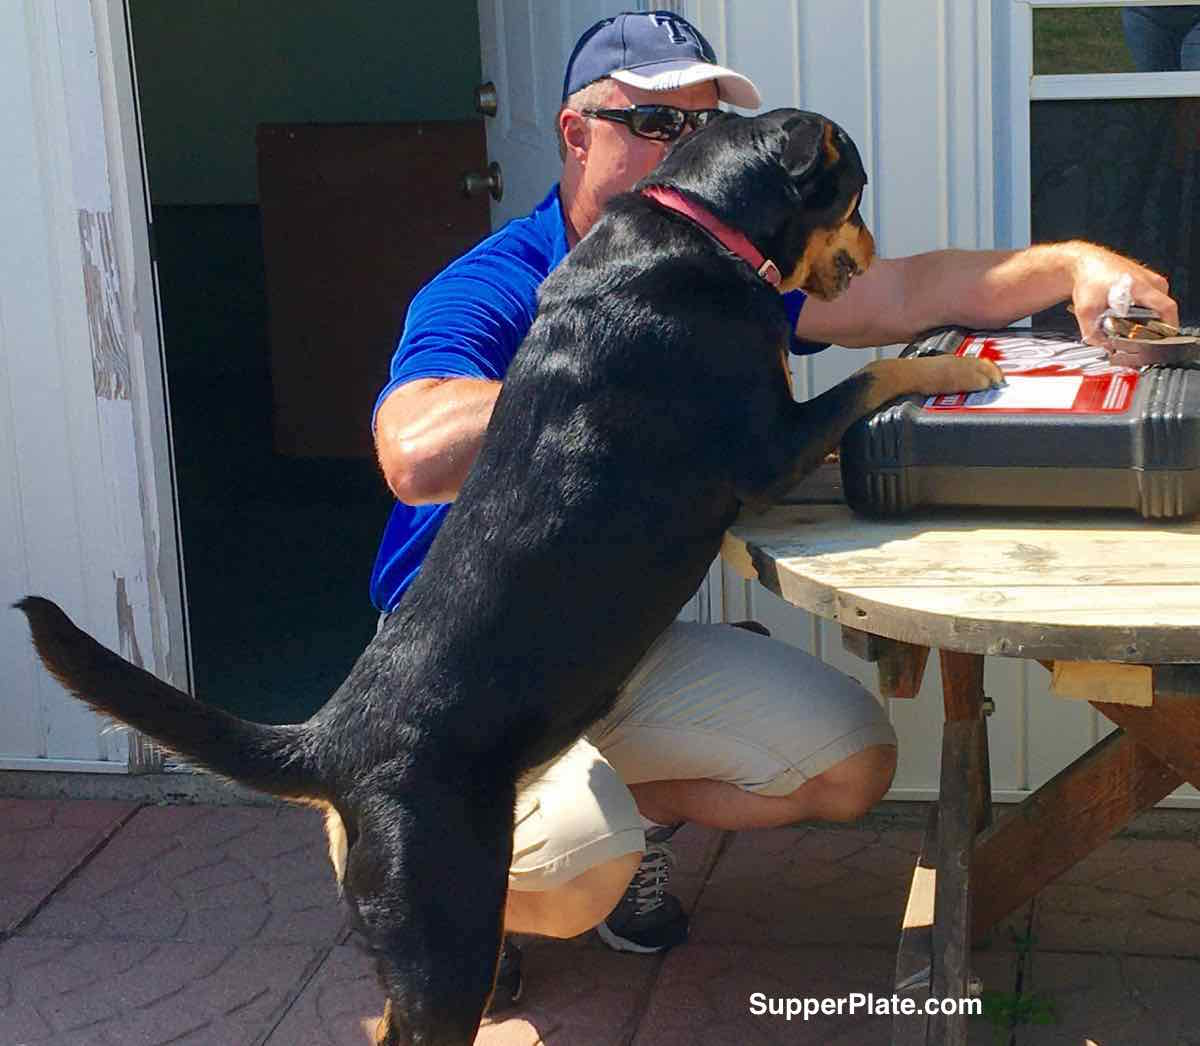 Dog and man looking at a tool box on a table outside